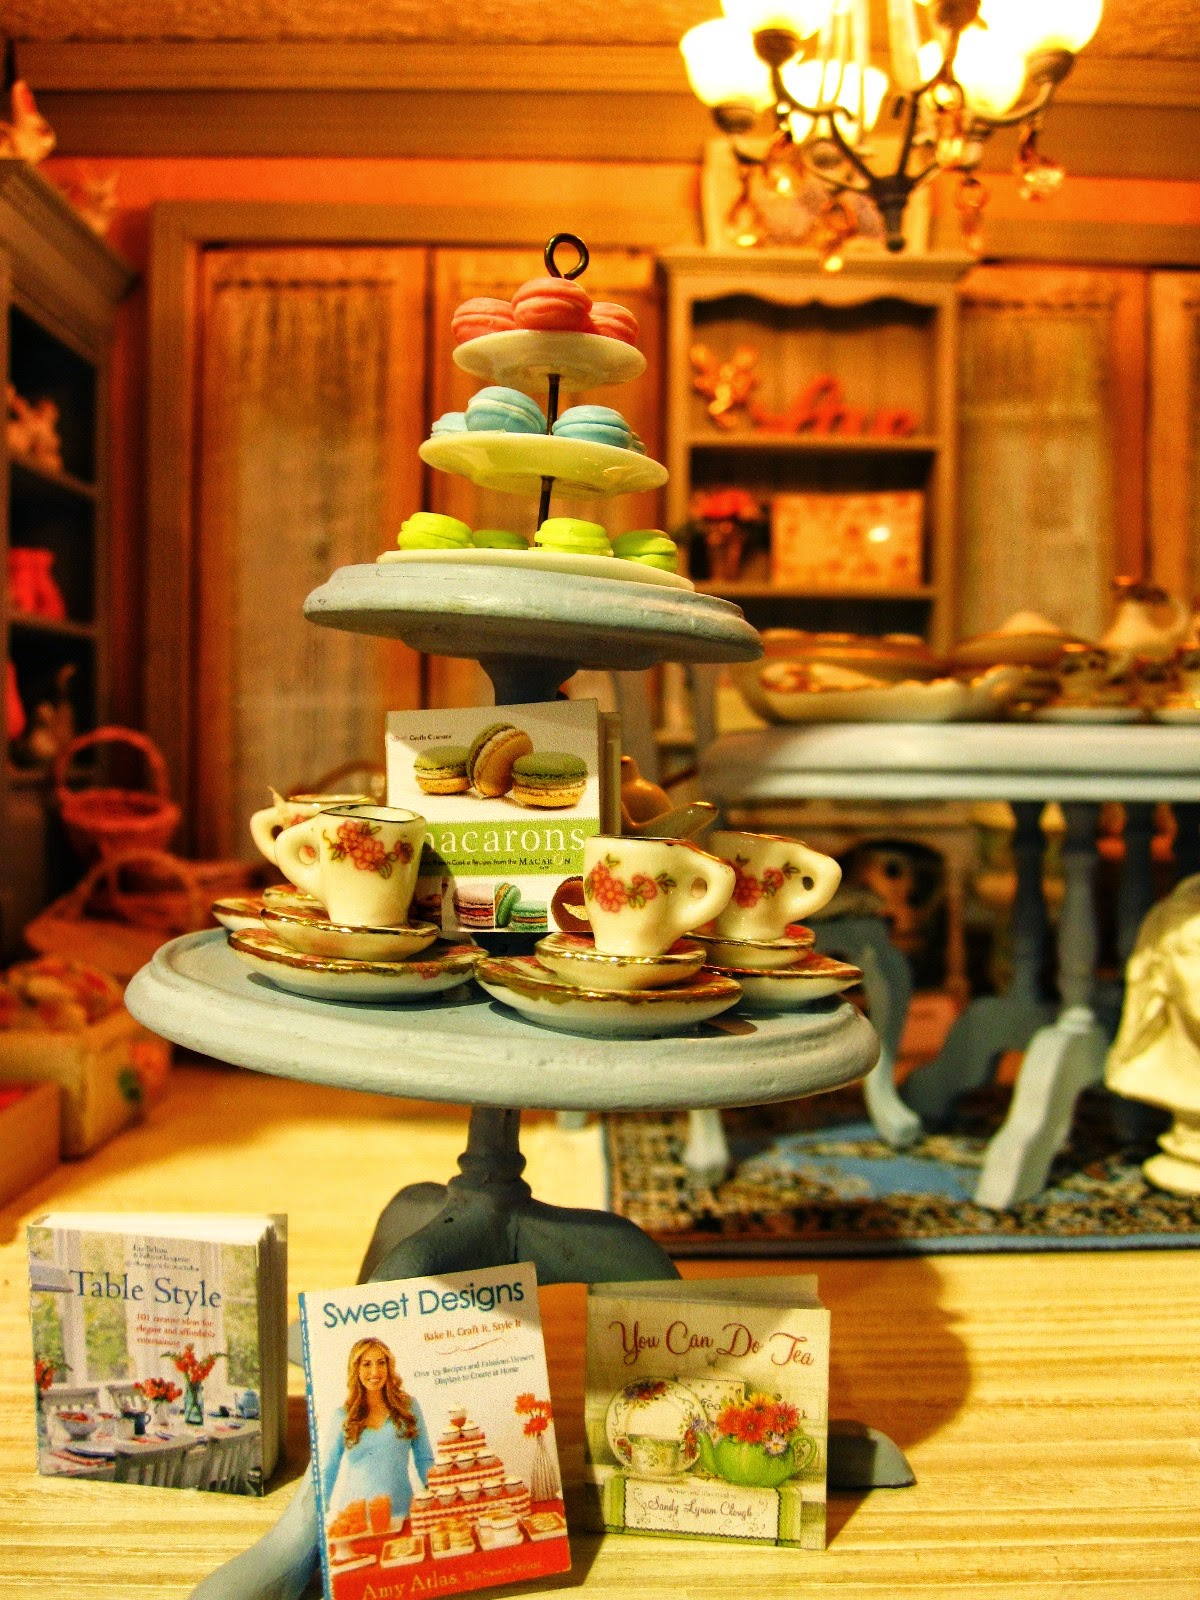 Modern miniature shabby chic shop three tier display of macarons, tea cup sets and cook books.